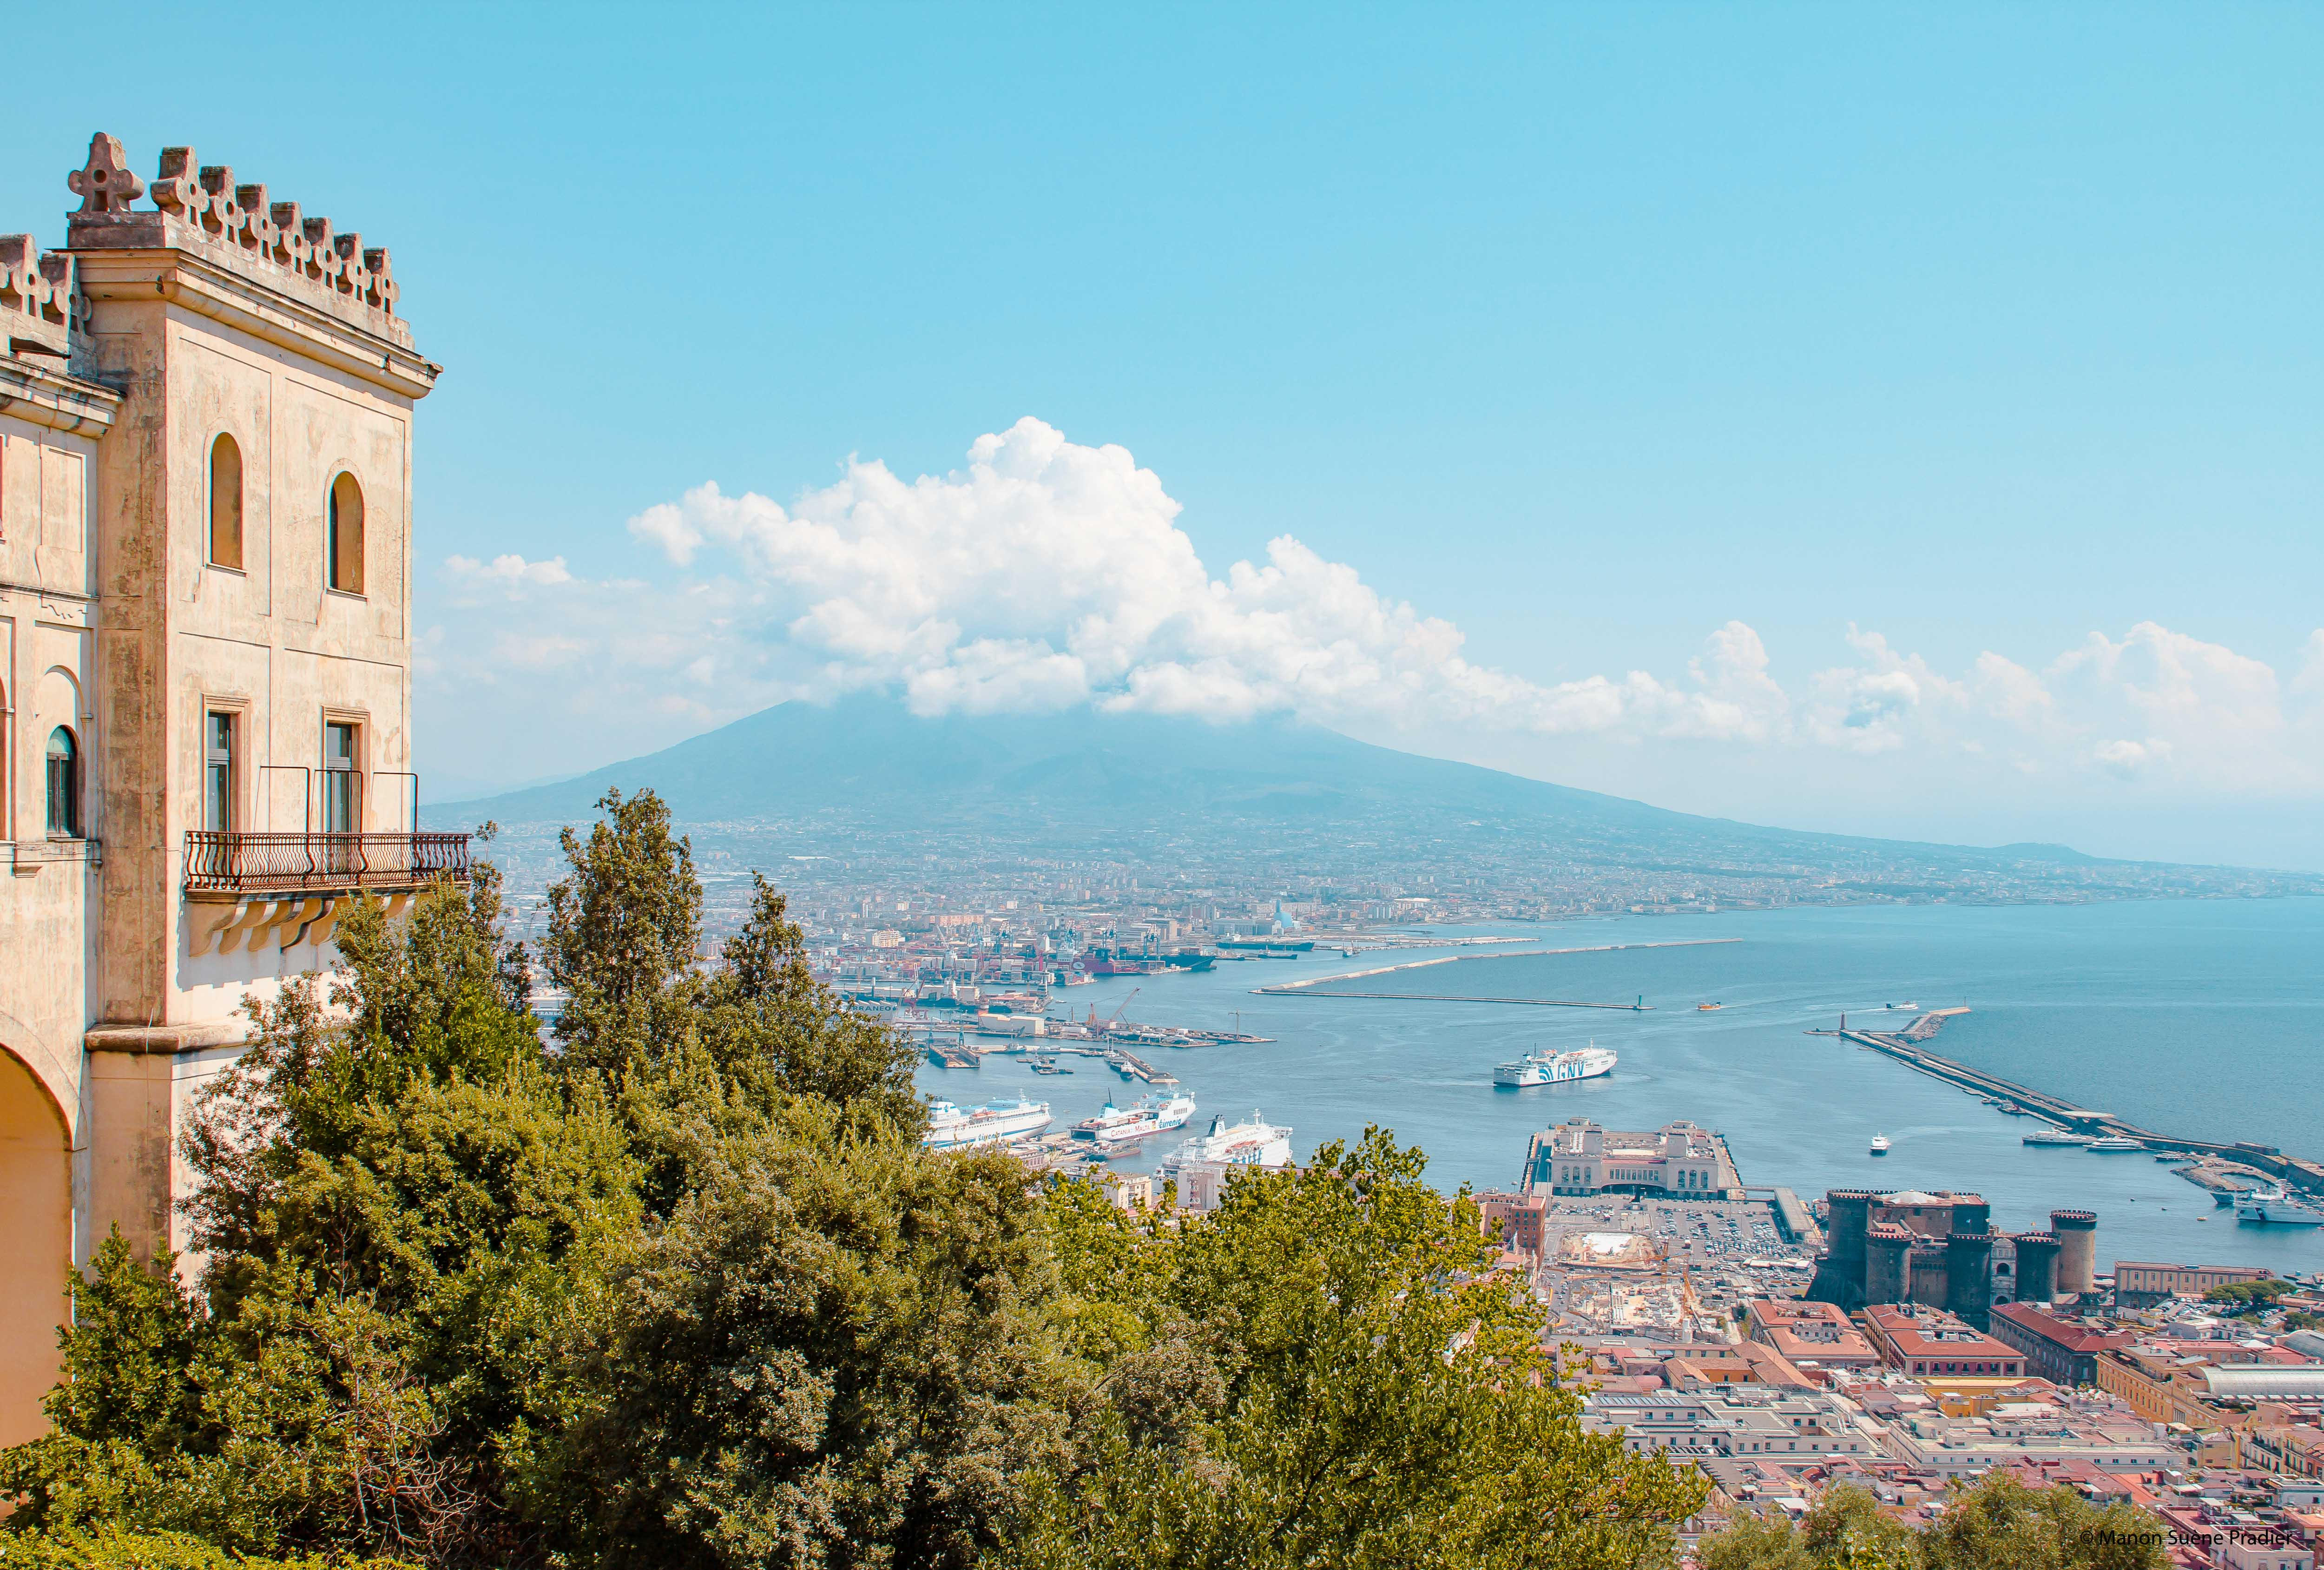 10 things to see in Naples